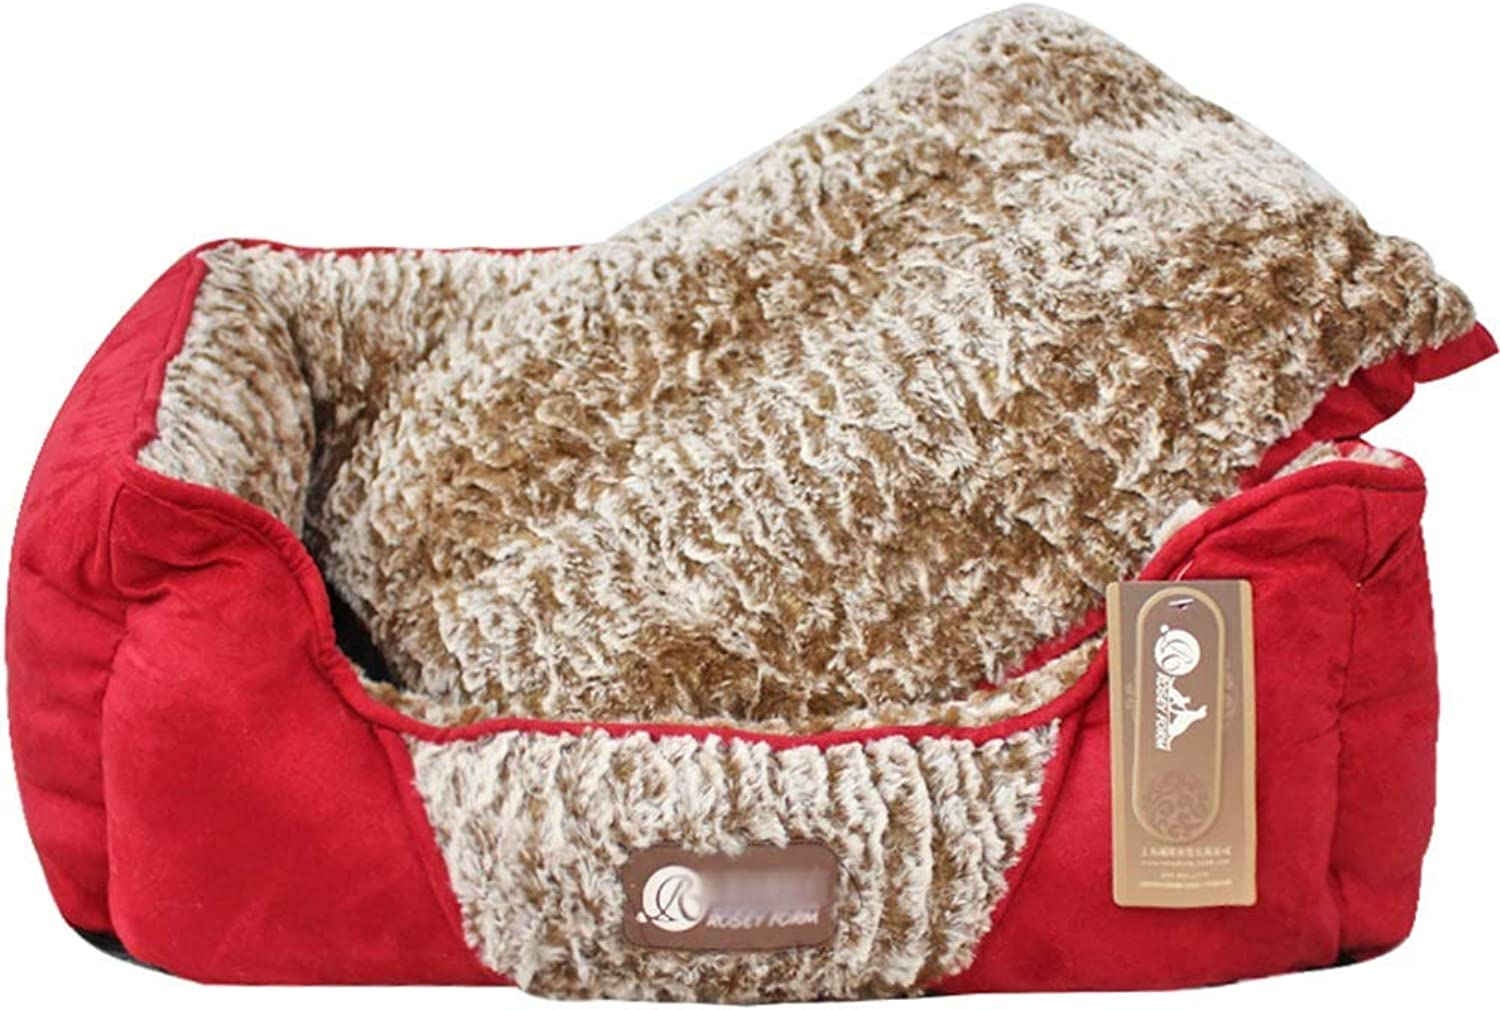 KYCD Dog Lounge Dog Bed Basket Cushion With Separable Liner Winter Warm Soft Comfortable Washable Red For Medium Dogs